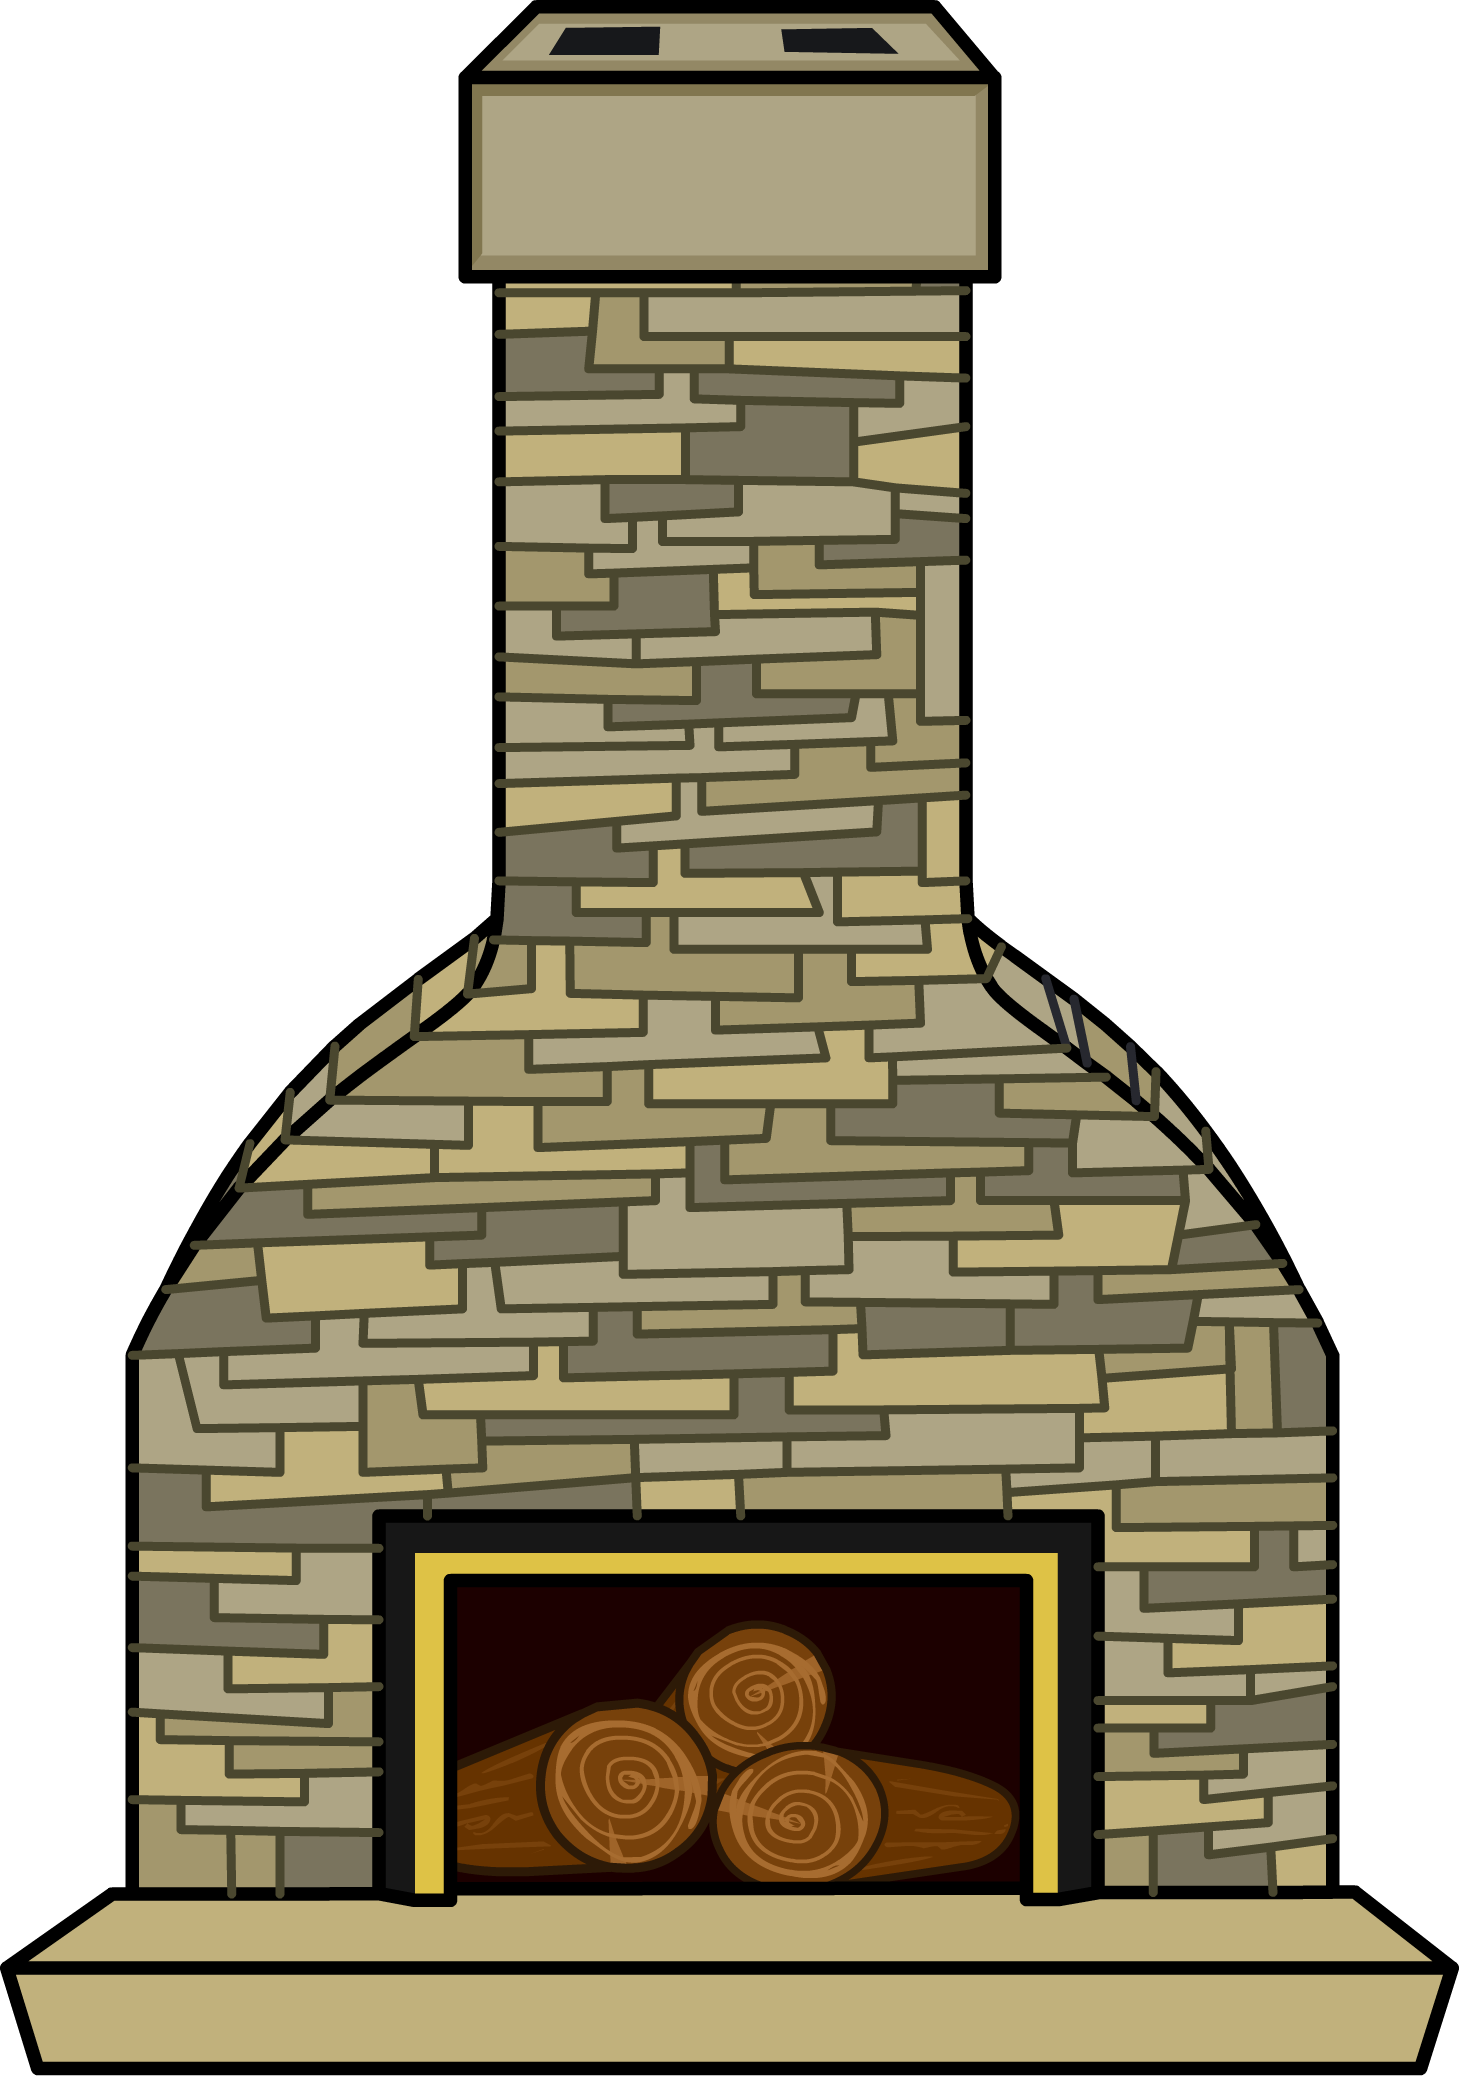 fireplace clipart cozy fireplace